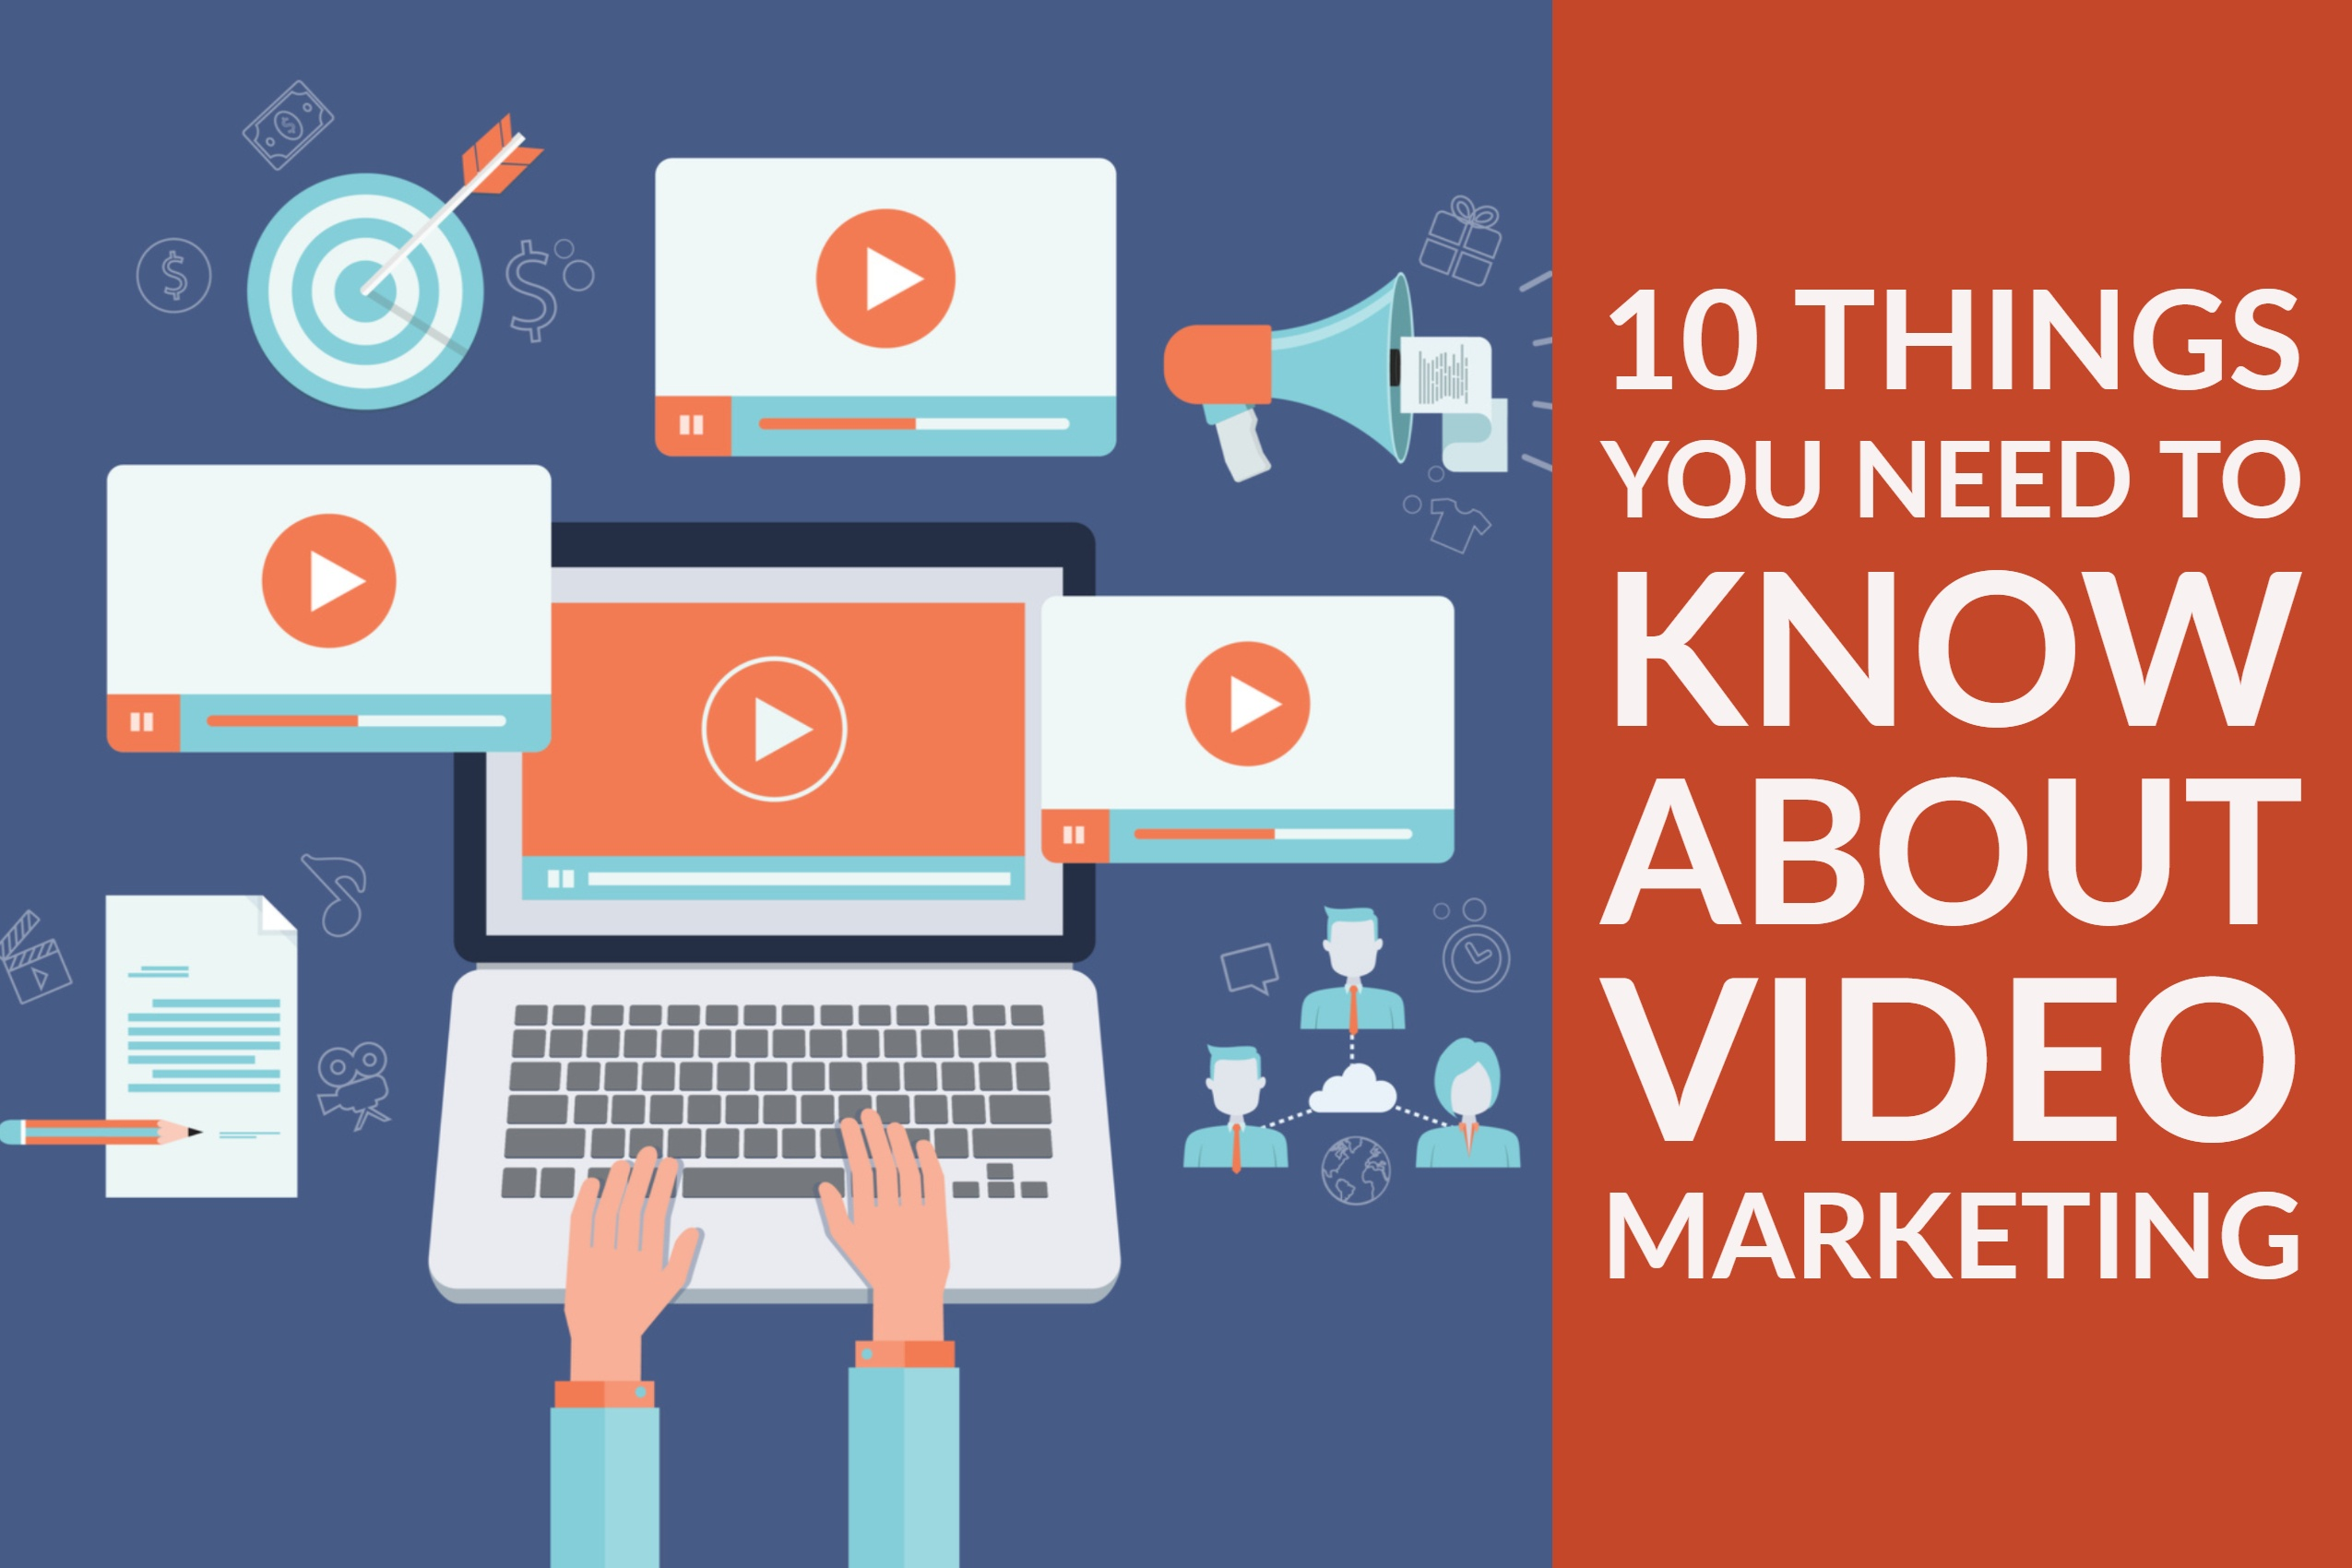 10 Things You Need To Know About Video Marketing (1)